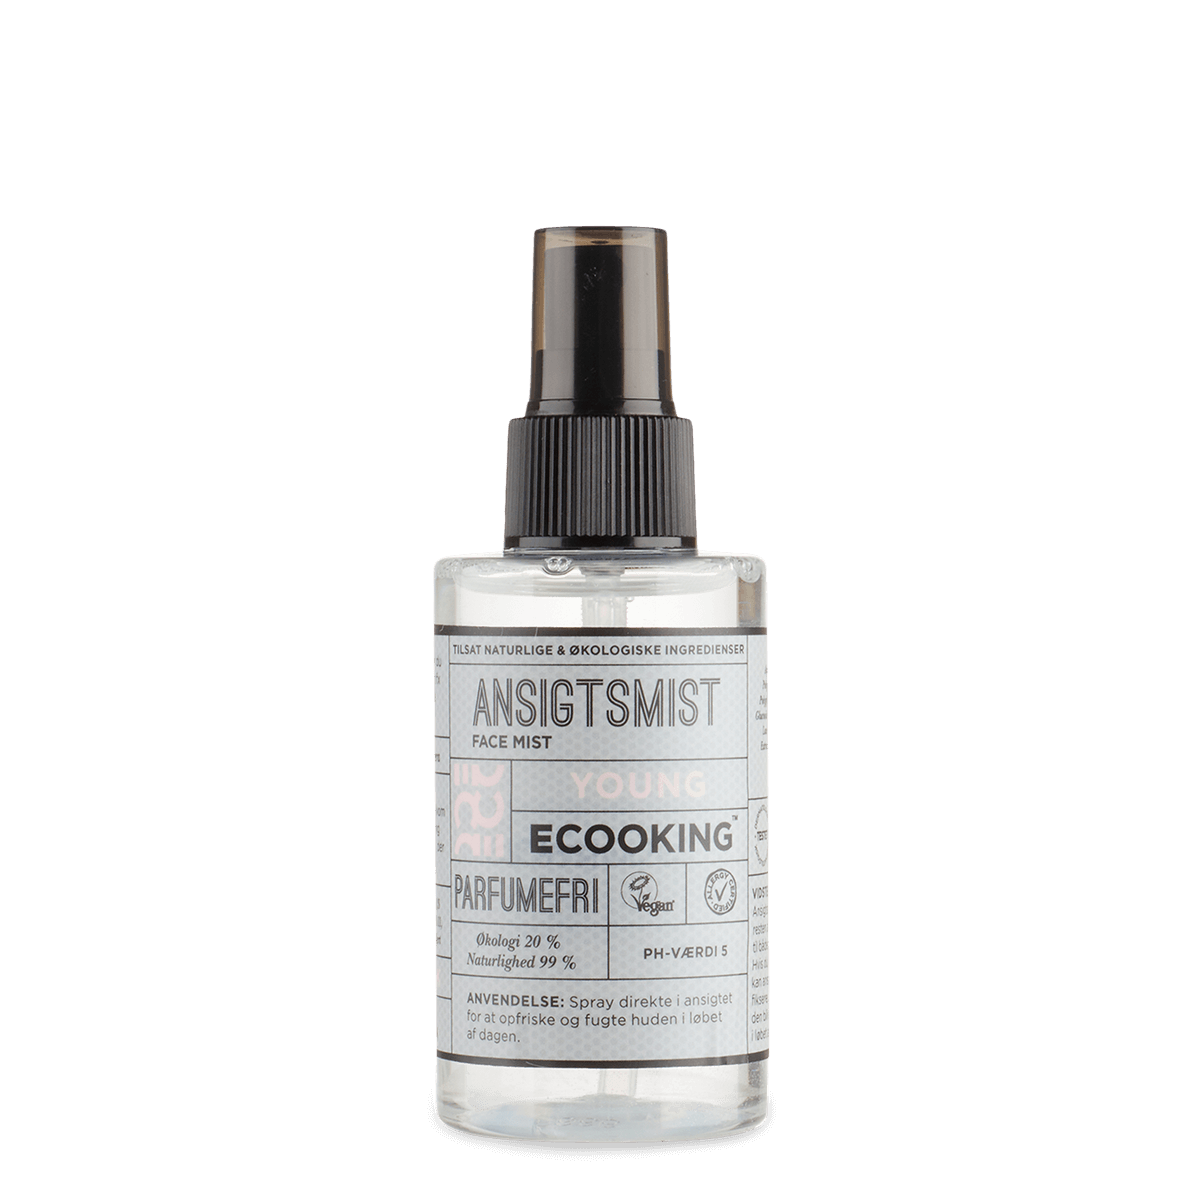 Young Ansigtsmist 125 ml